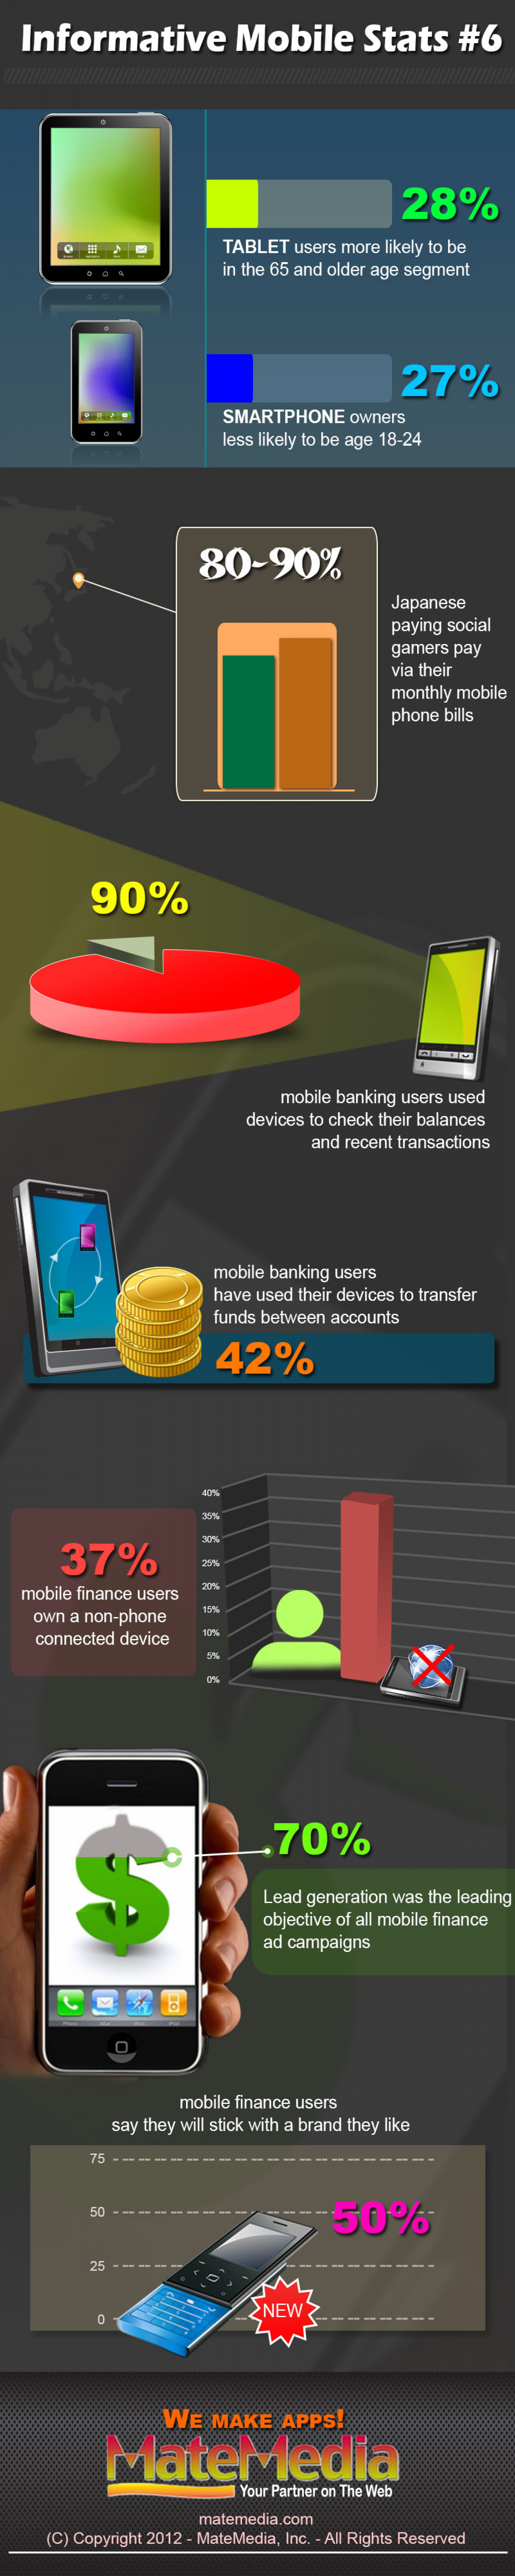 Informative Mobile Stats #6 Infographic